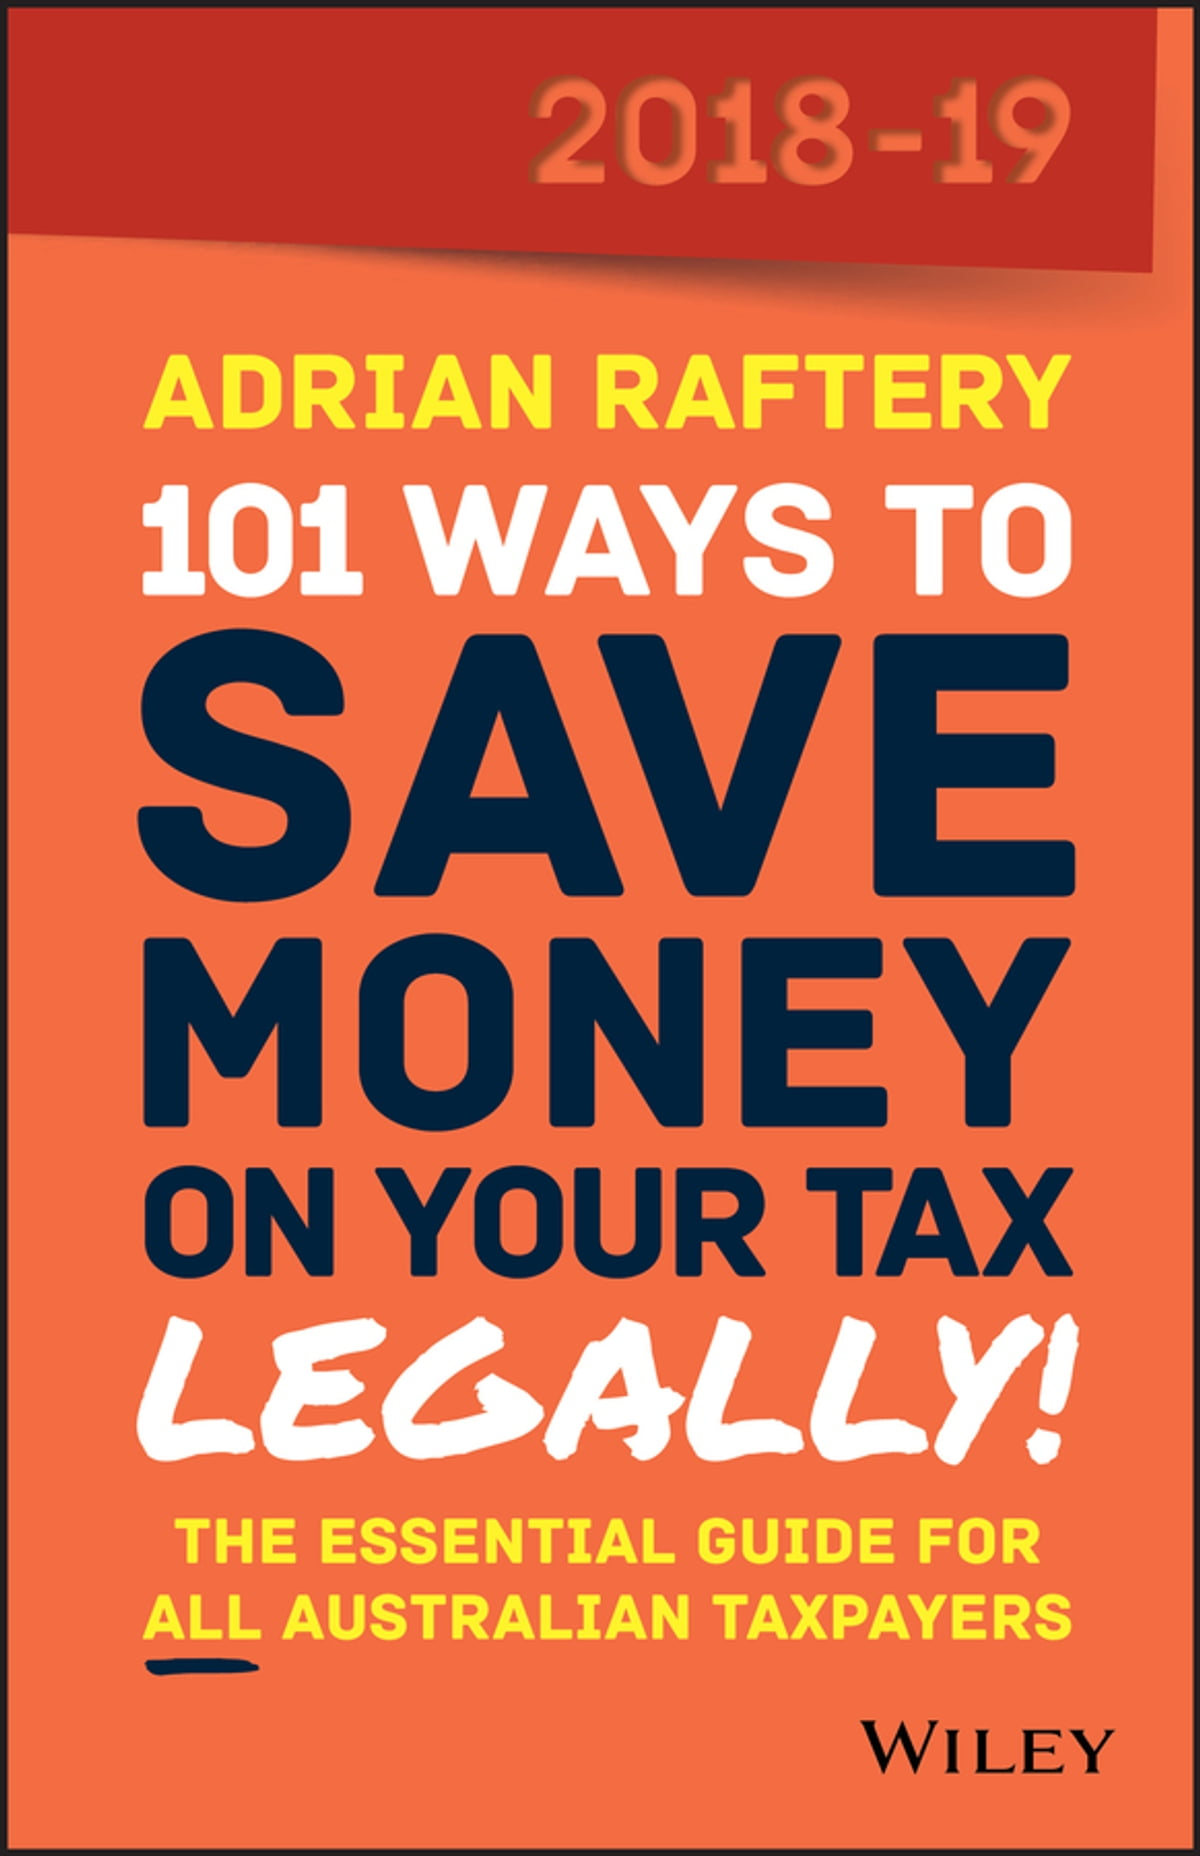 101 Ways To Save Money on Your Tax - Legally! 2018-2019 eBook by Adrian  Raftery - 9780730359272 | Rakuten Kobo